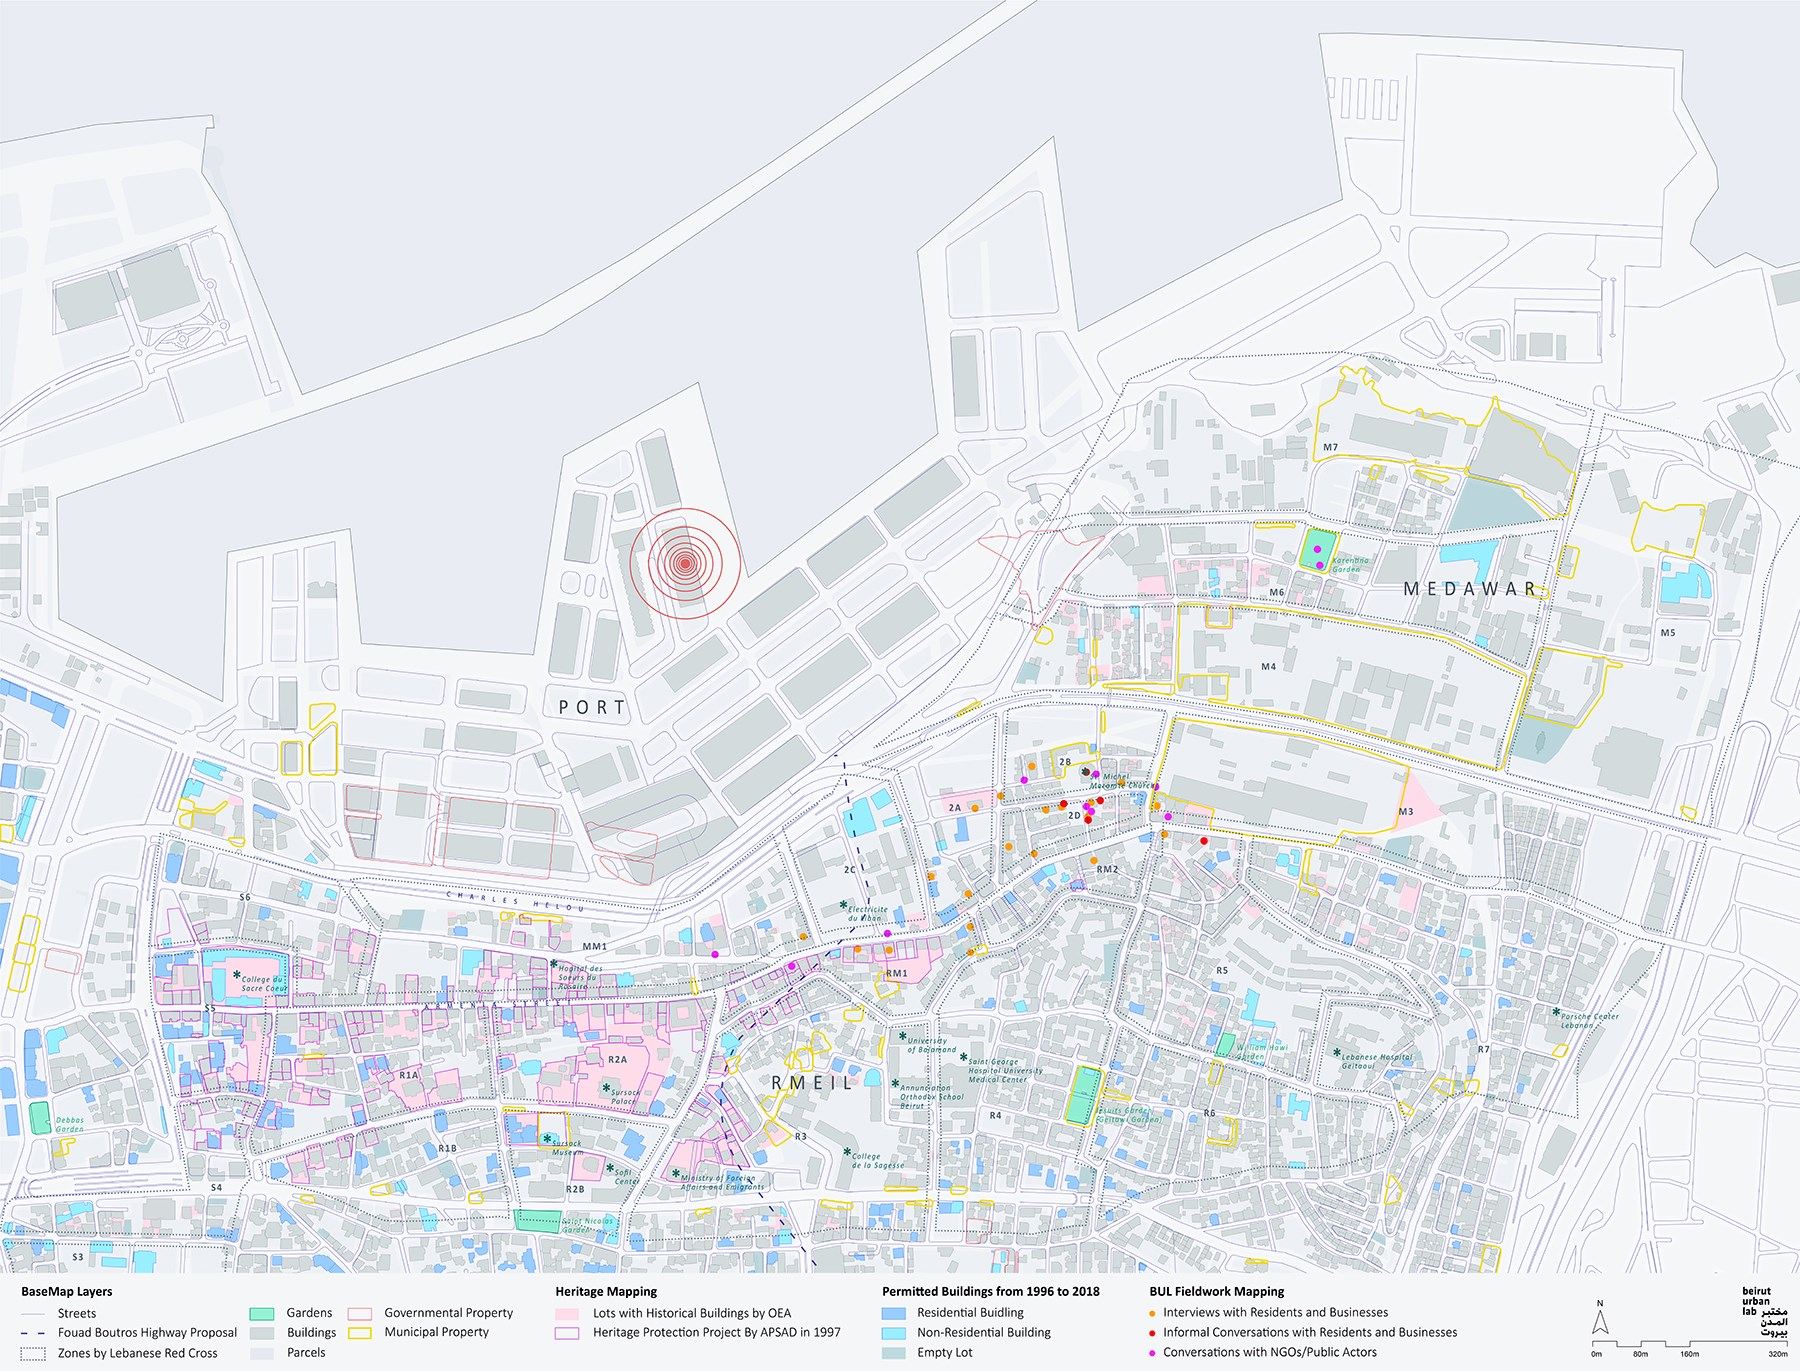 As a first step, the Lab's mapping team overlapped all the available information about the affected neighborhood to produce a more comprehensive image of these areas